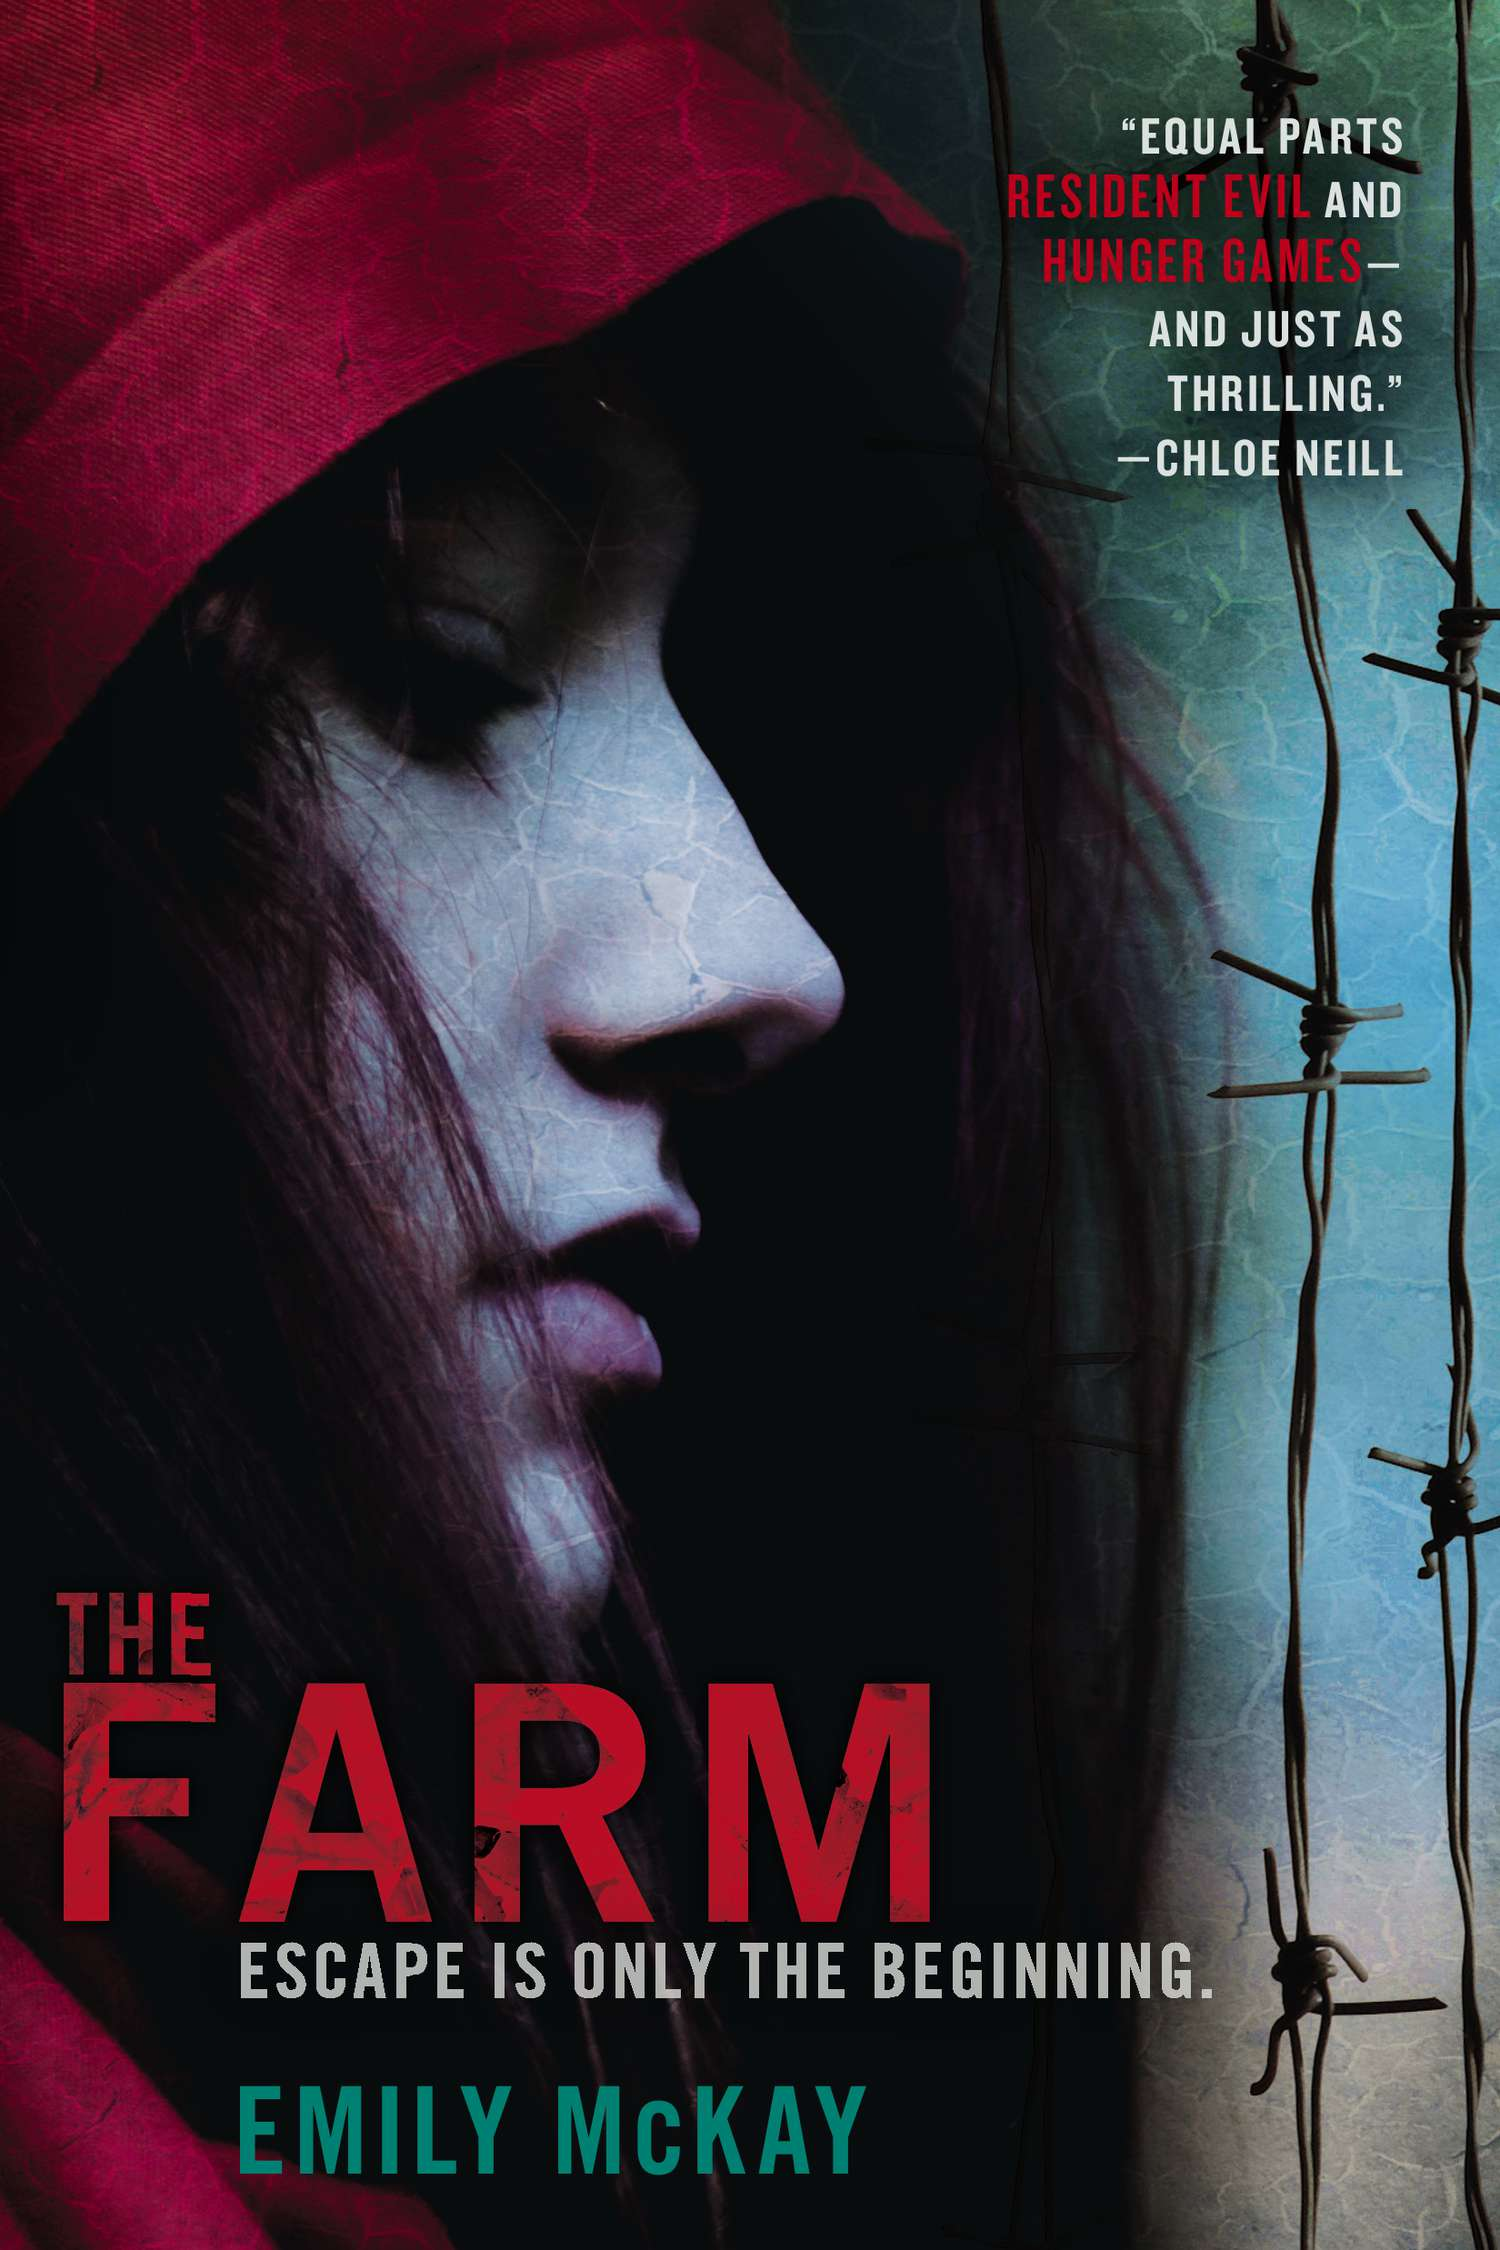 The Farm by Emily McKay book cover